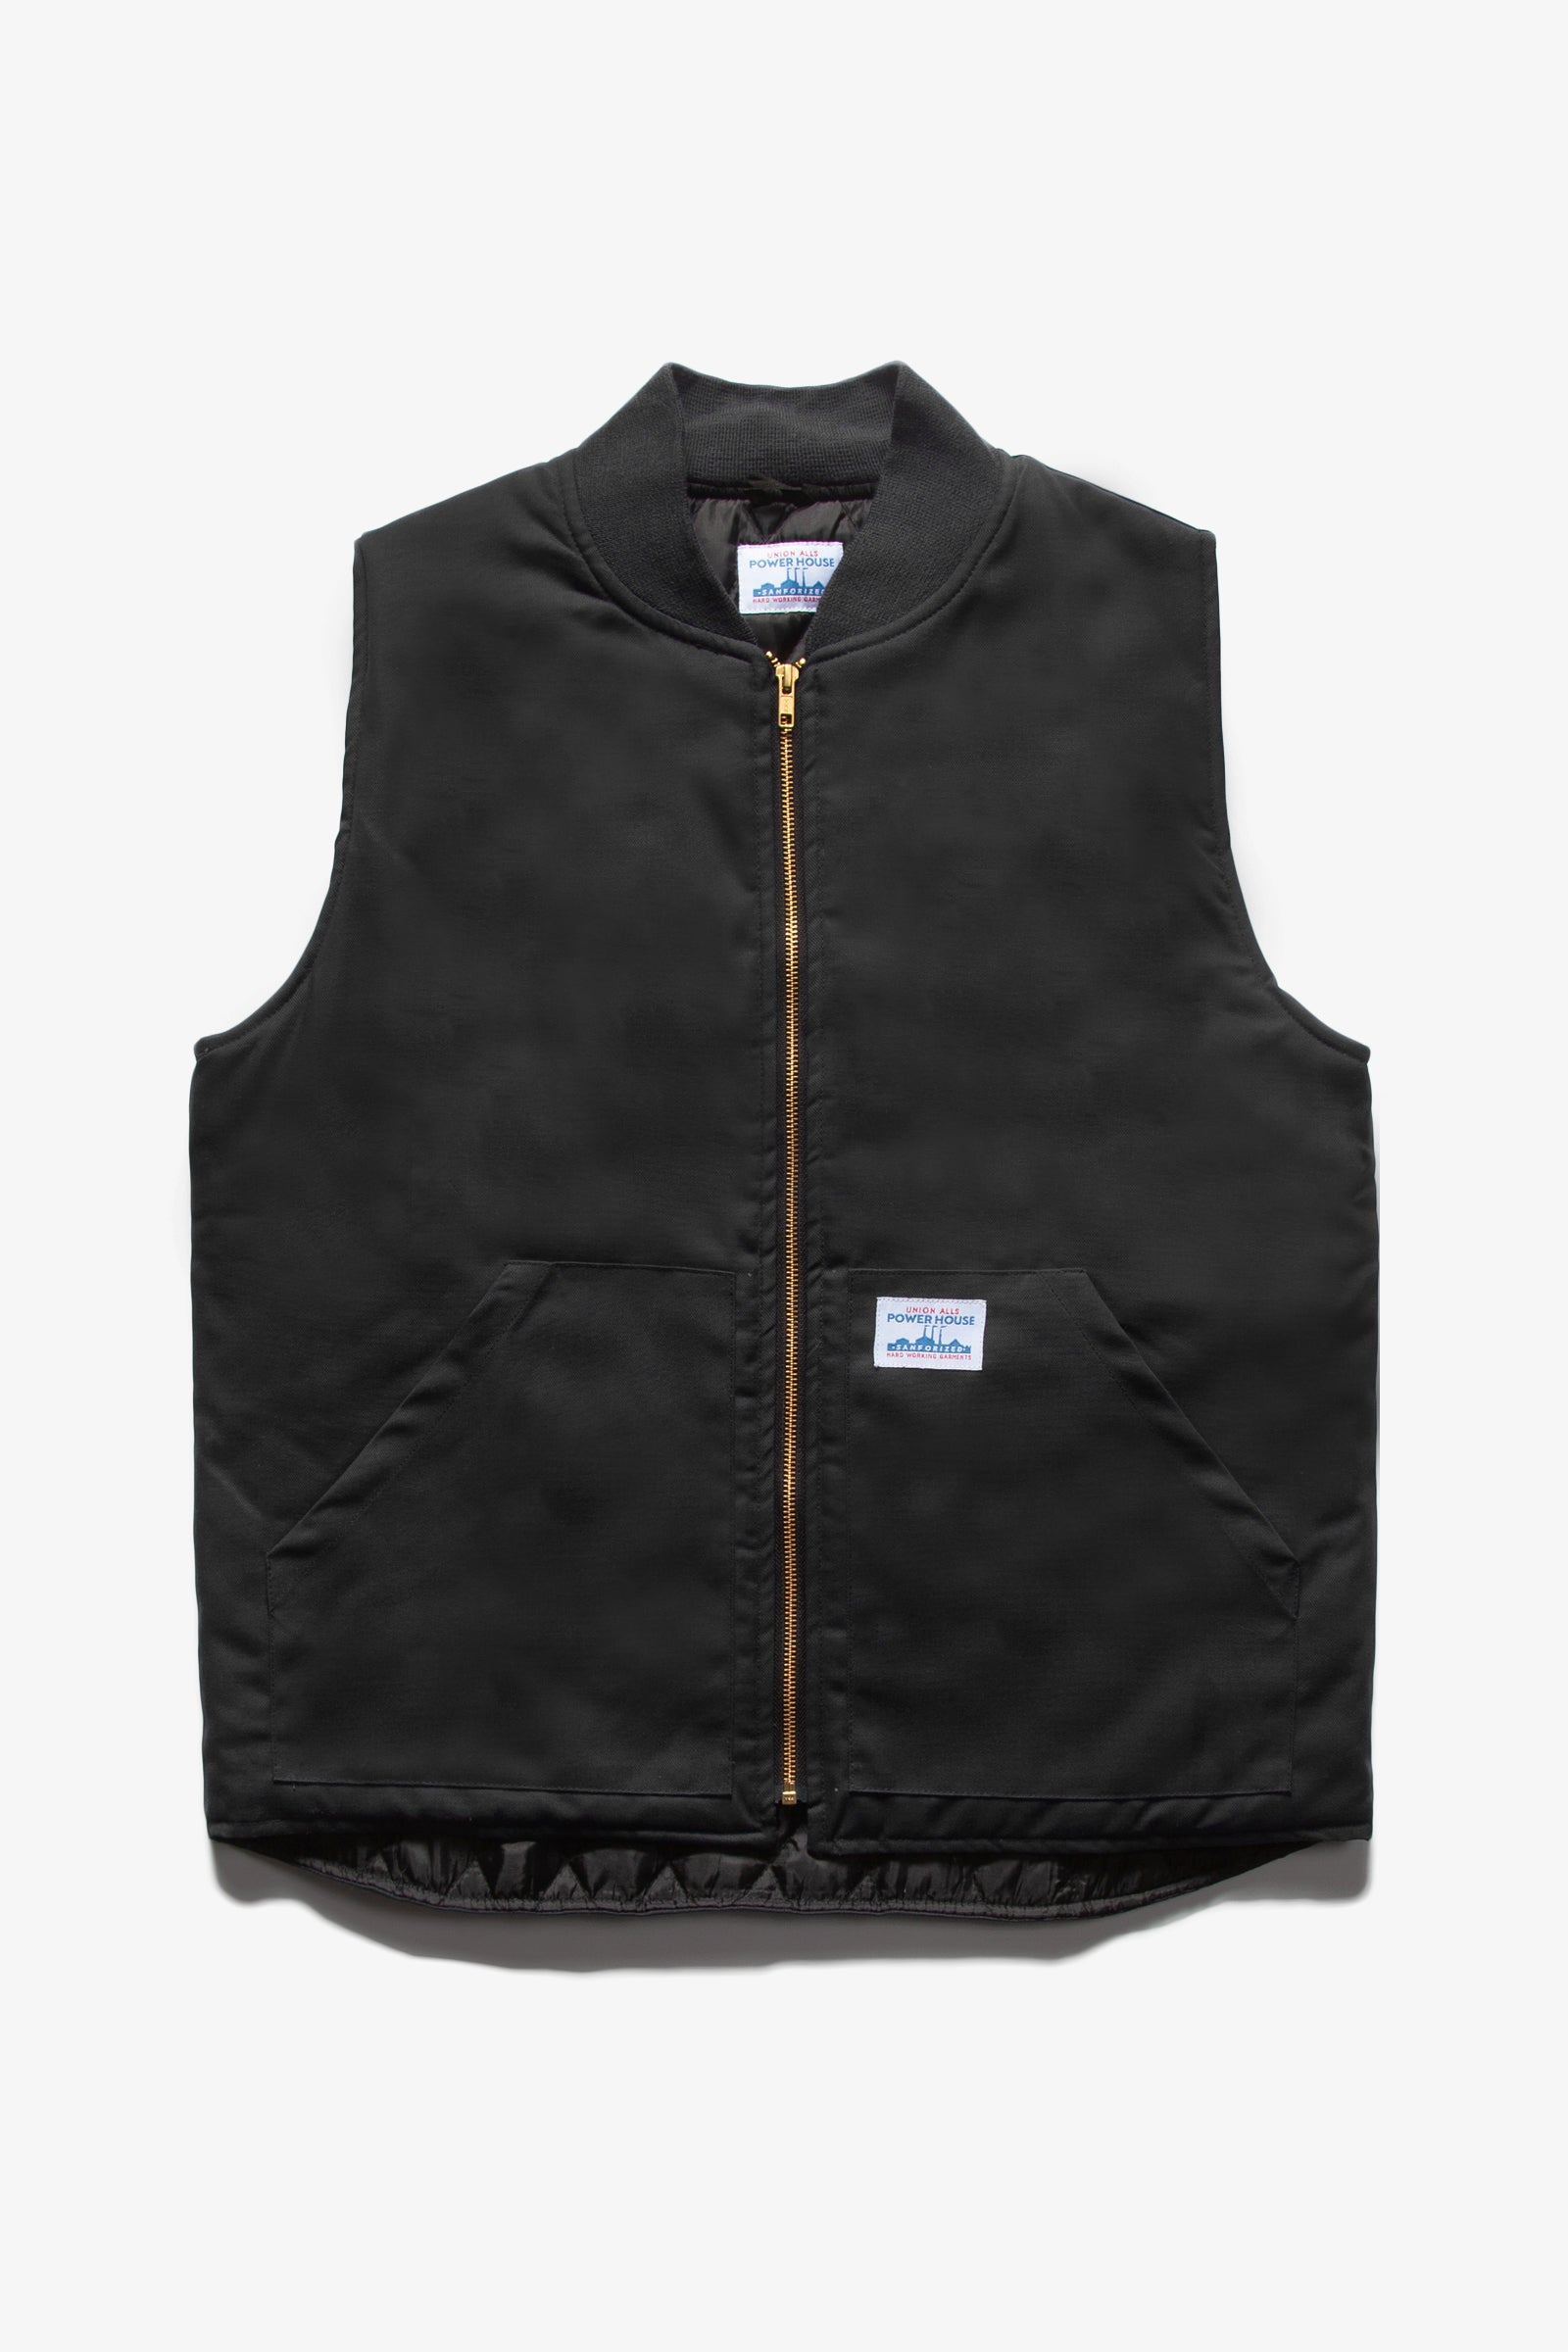 Power House - Canvas Work Vest - Black